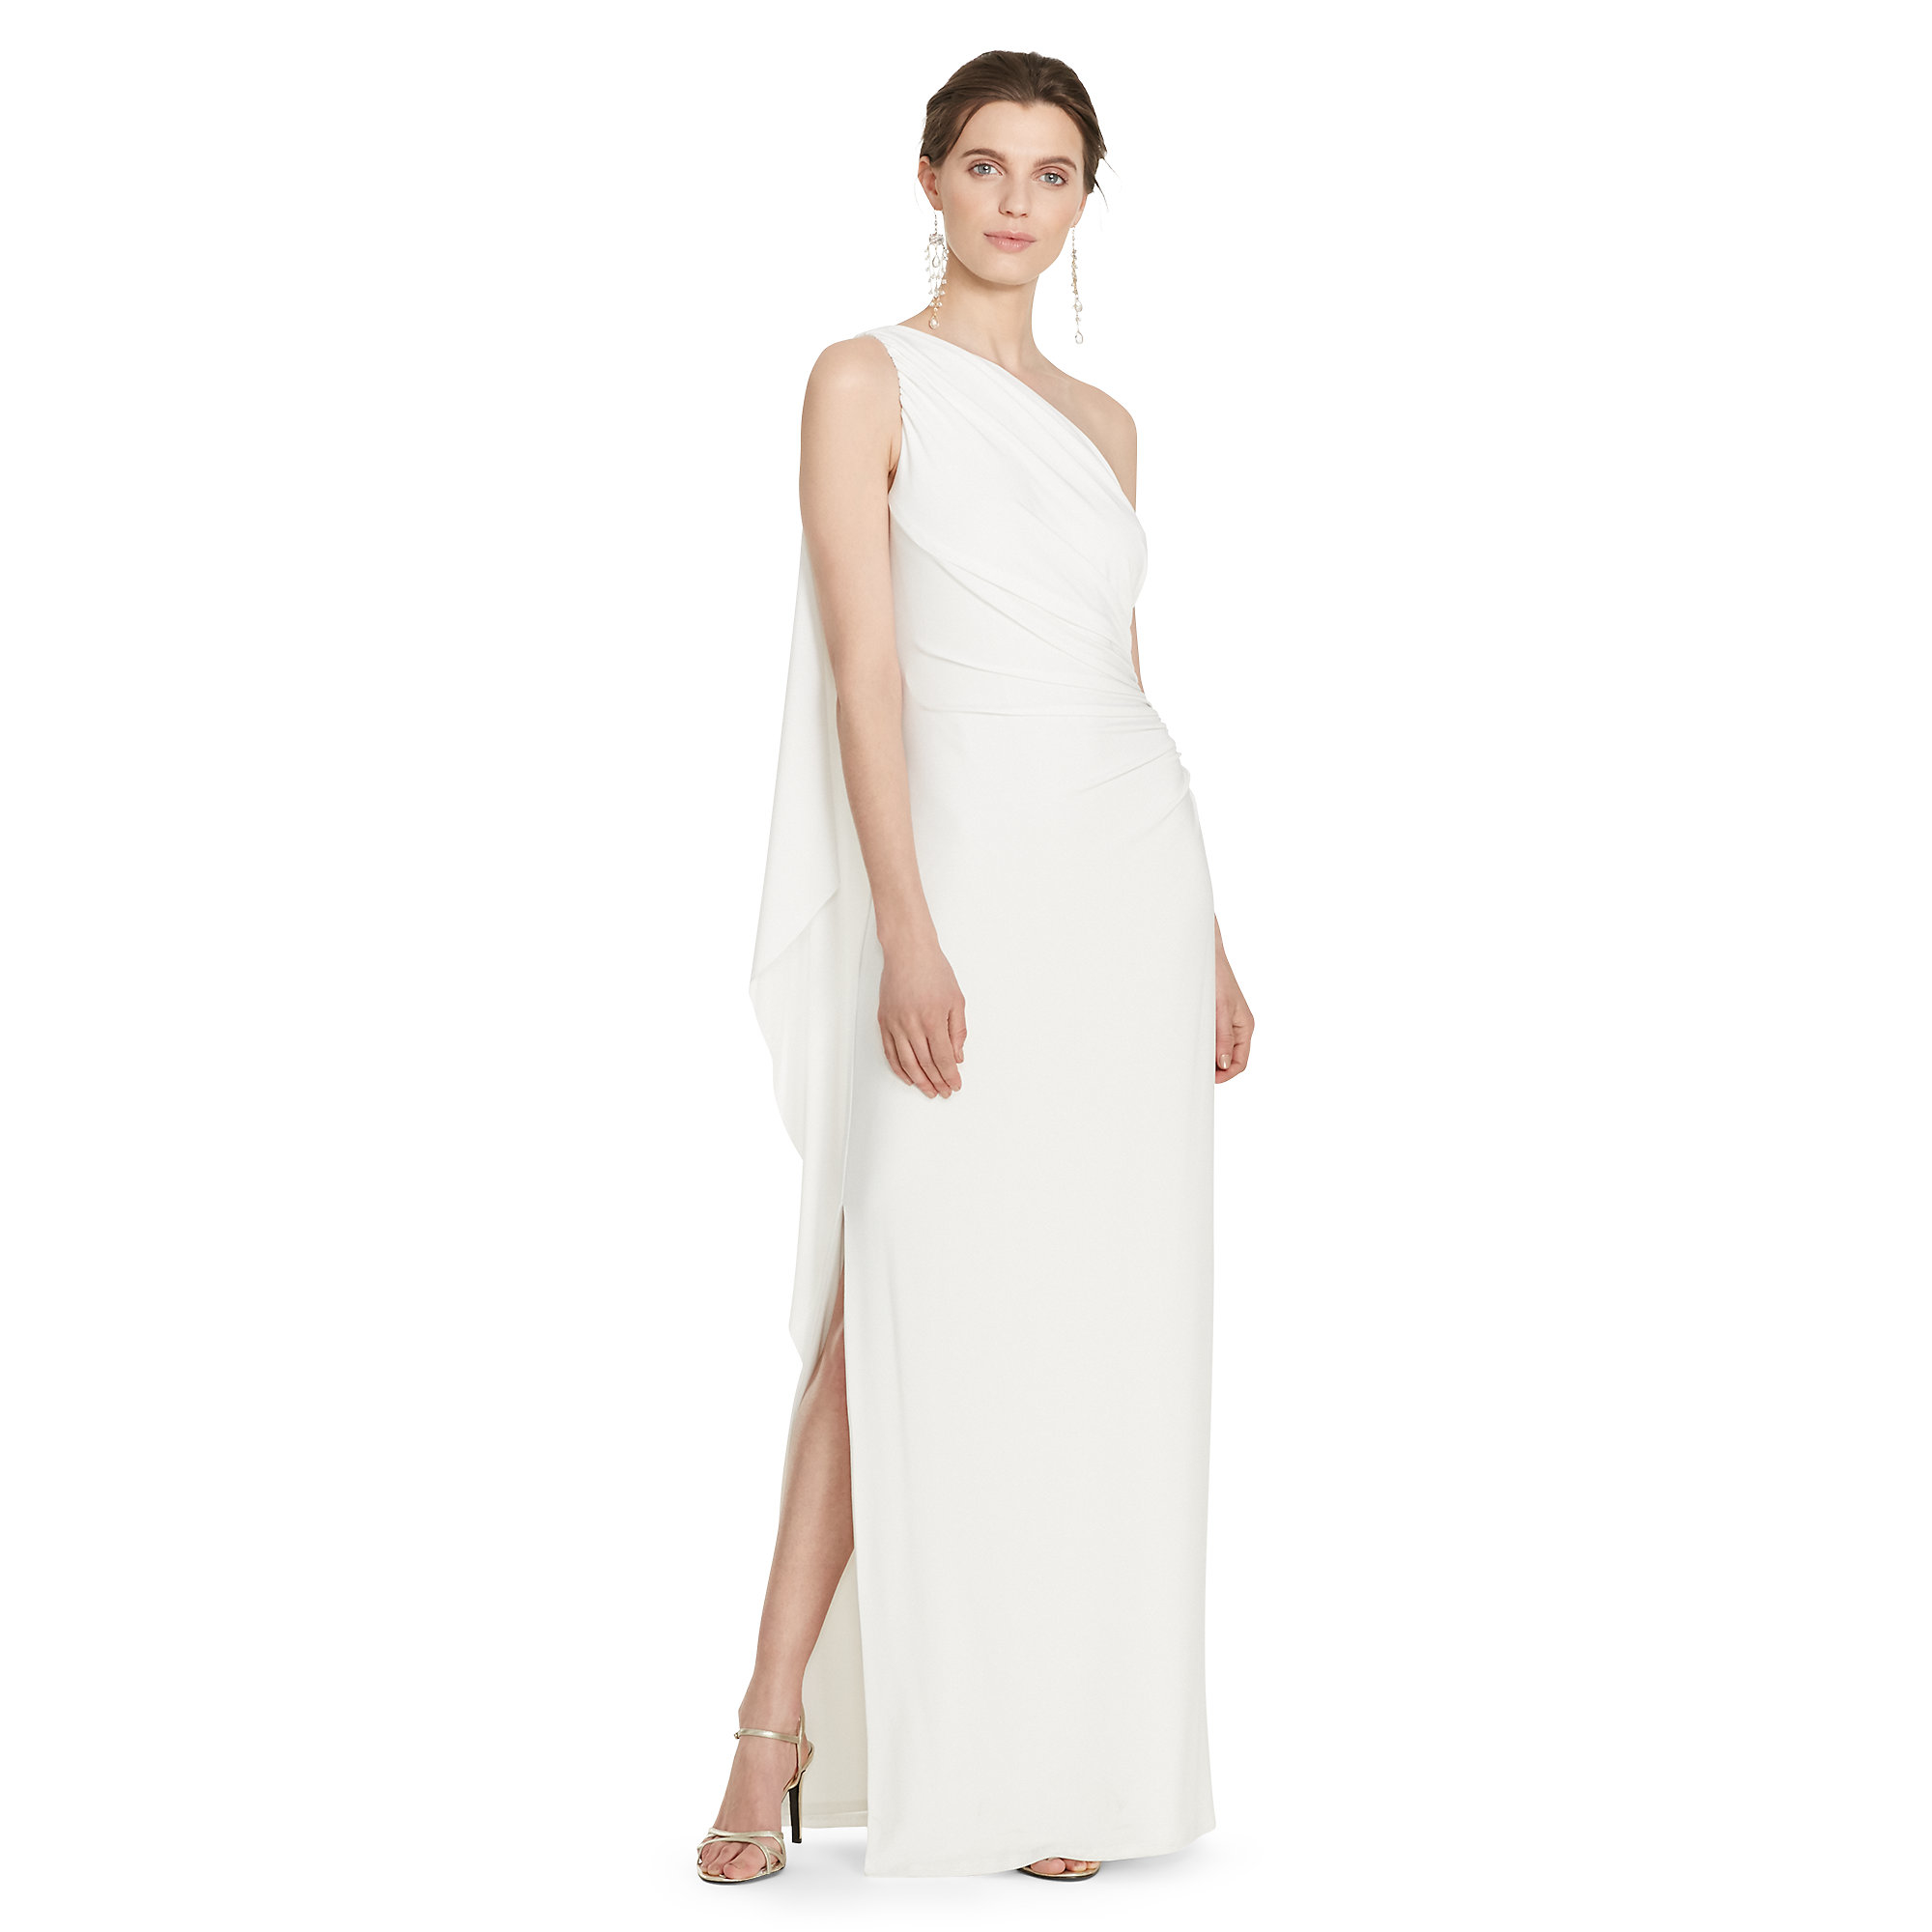 Lyst - Pink Pony One-shoulder Cape Gown in White